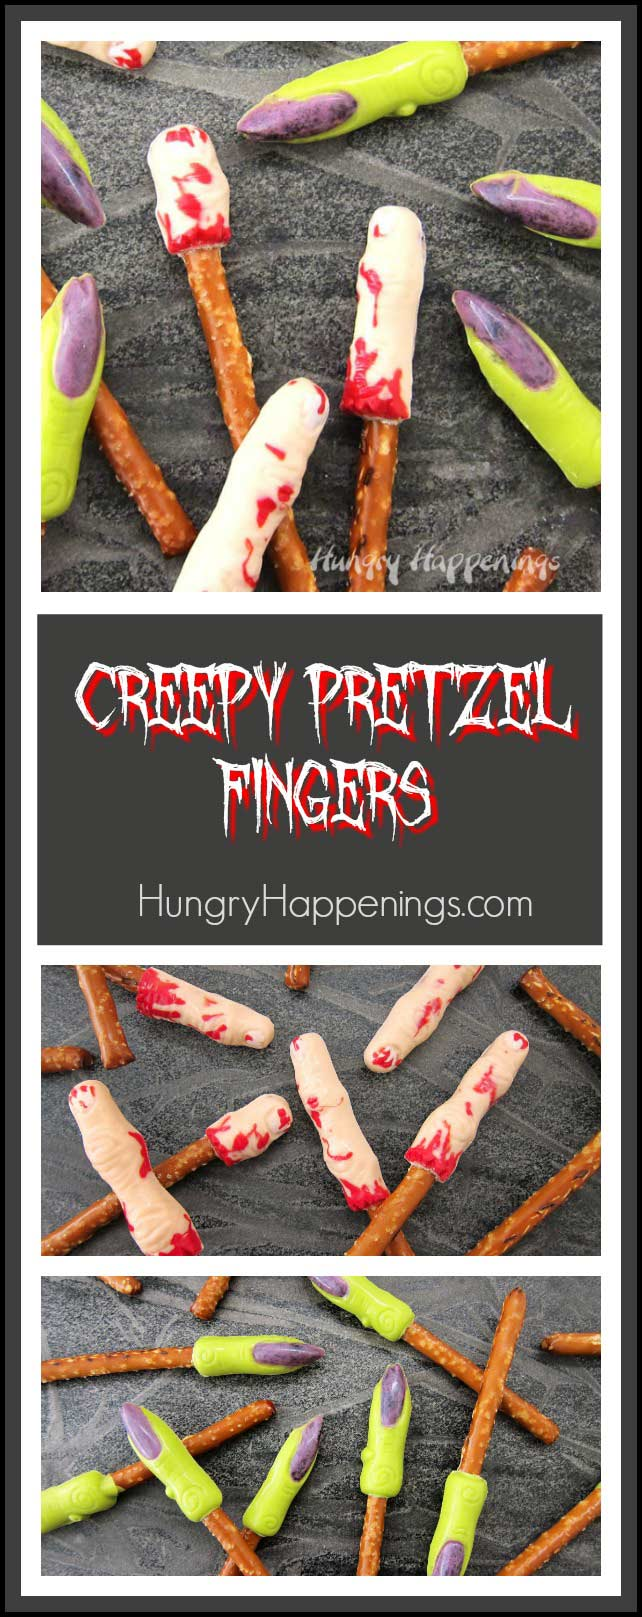 Learn how to paint Wilton Candy Melts® into molds to create these Creepy Pretzel Fingers for Halloween. Watch the video tutorial at HungryHappenings.com for instructions.